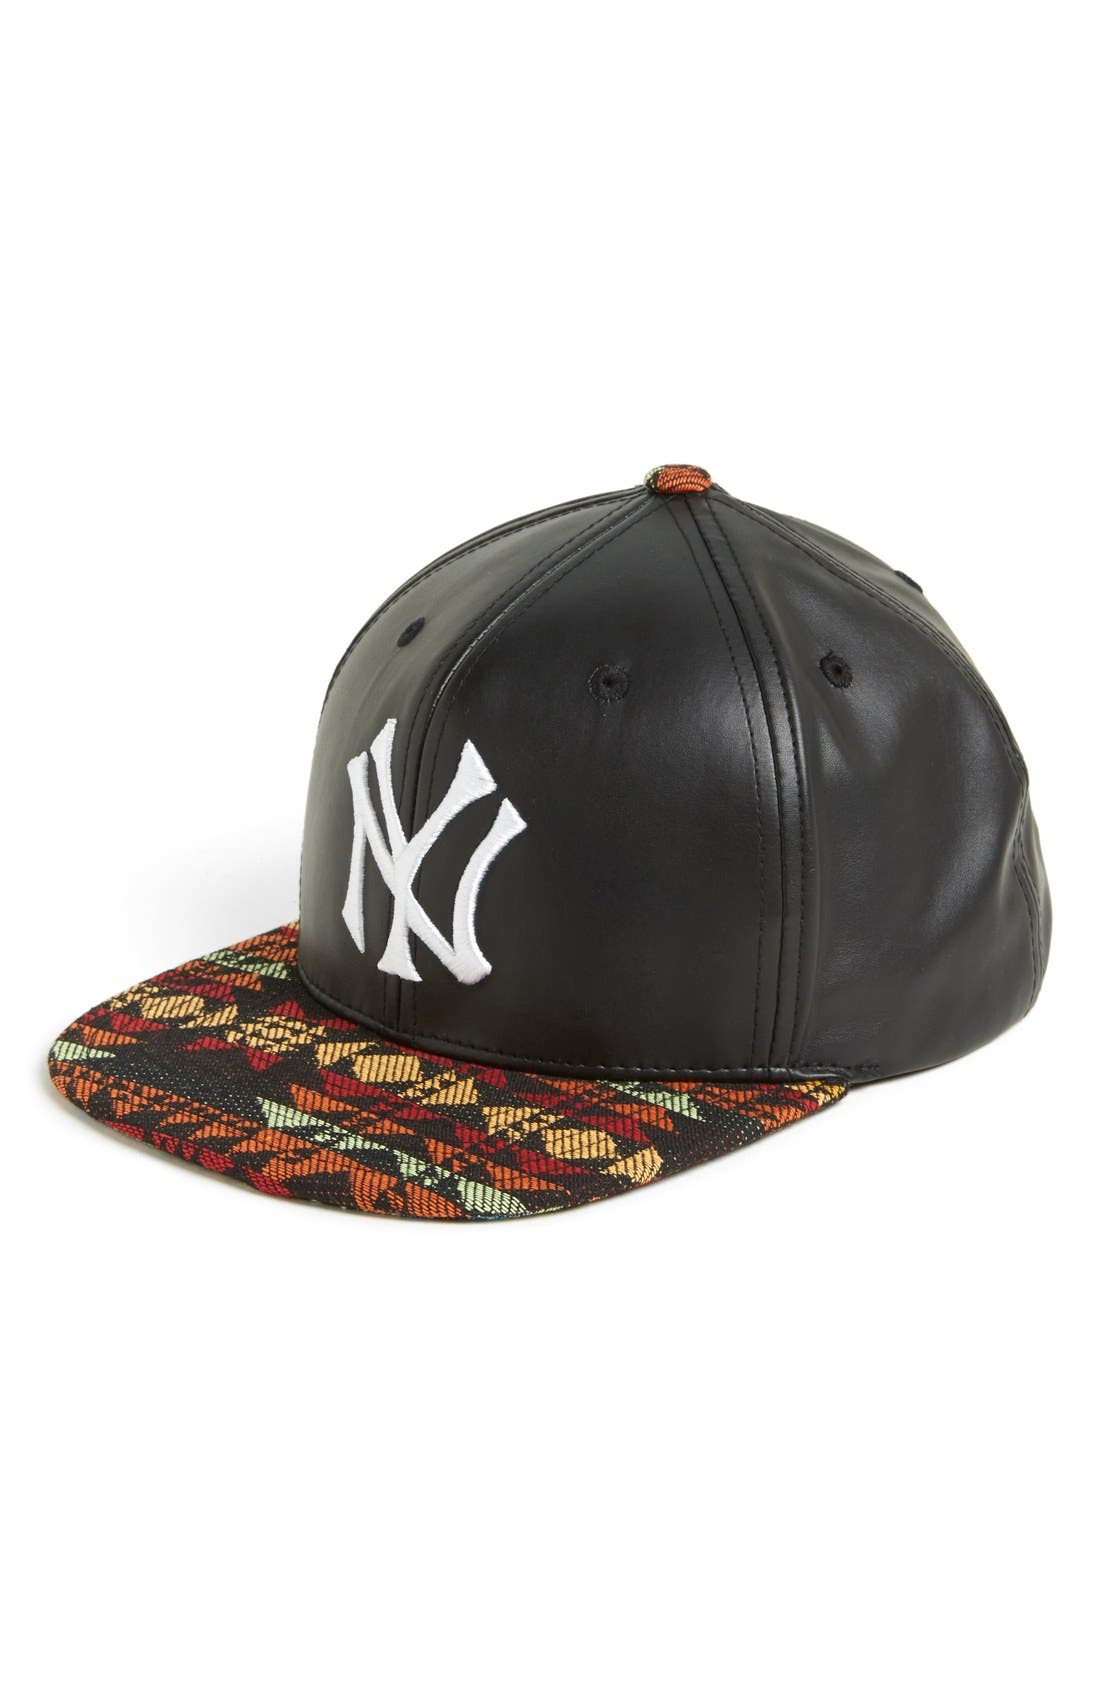 Main Image - American Needle 'Sleek - New York Yankees' Baseball Cap